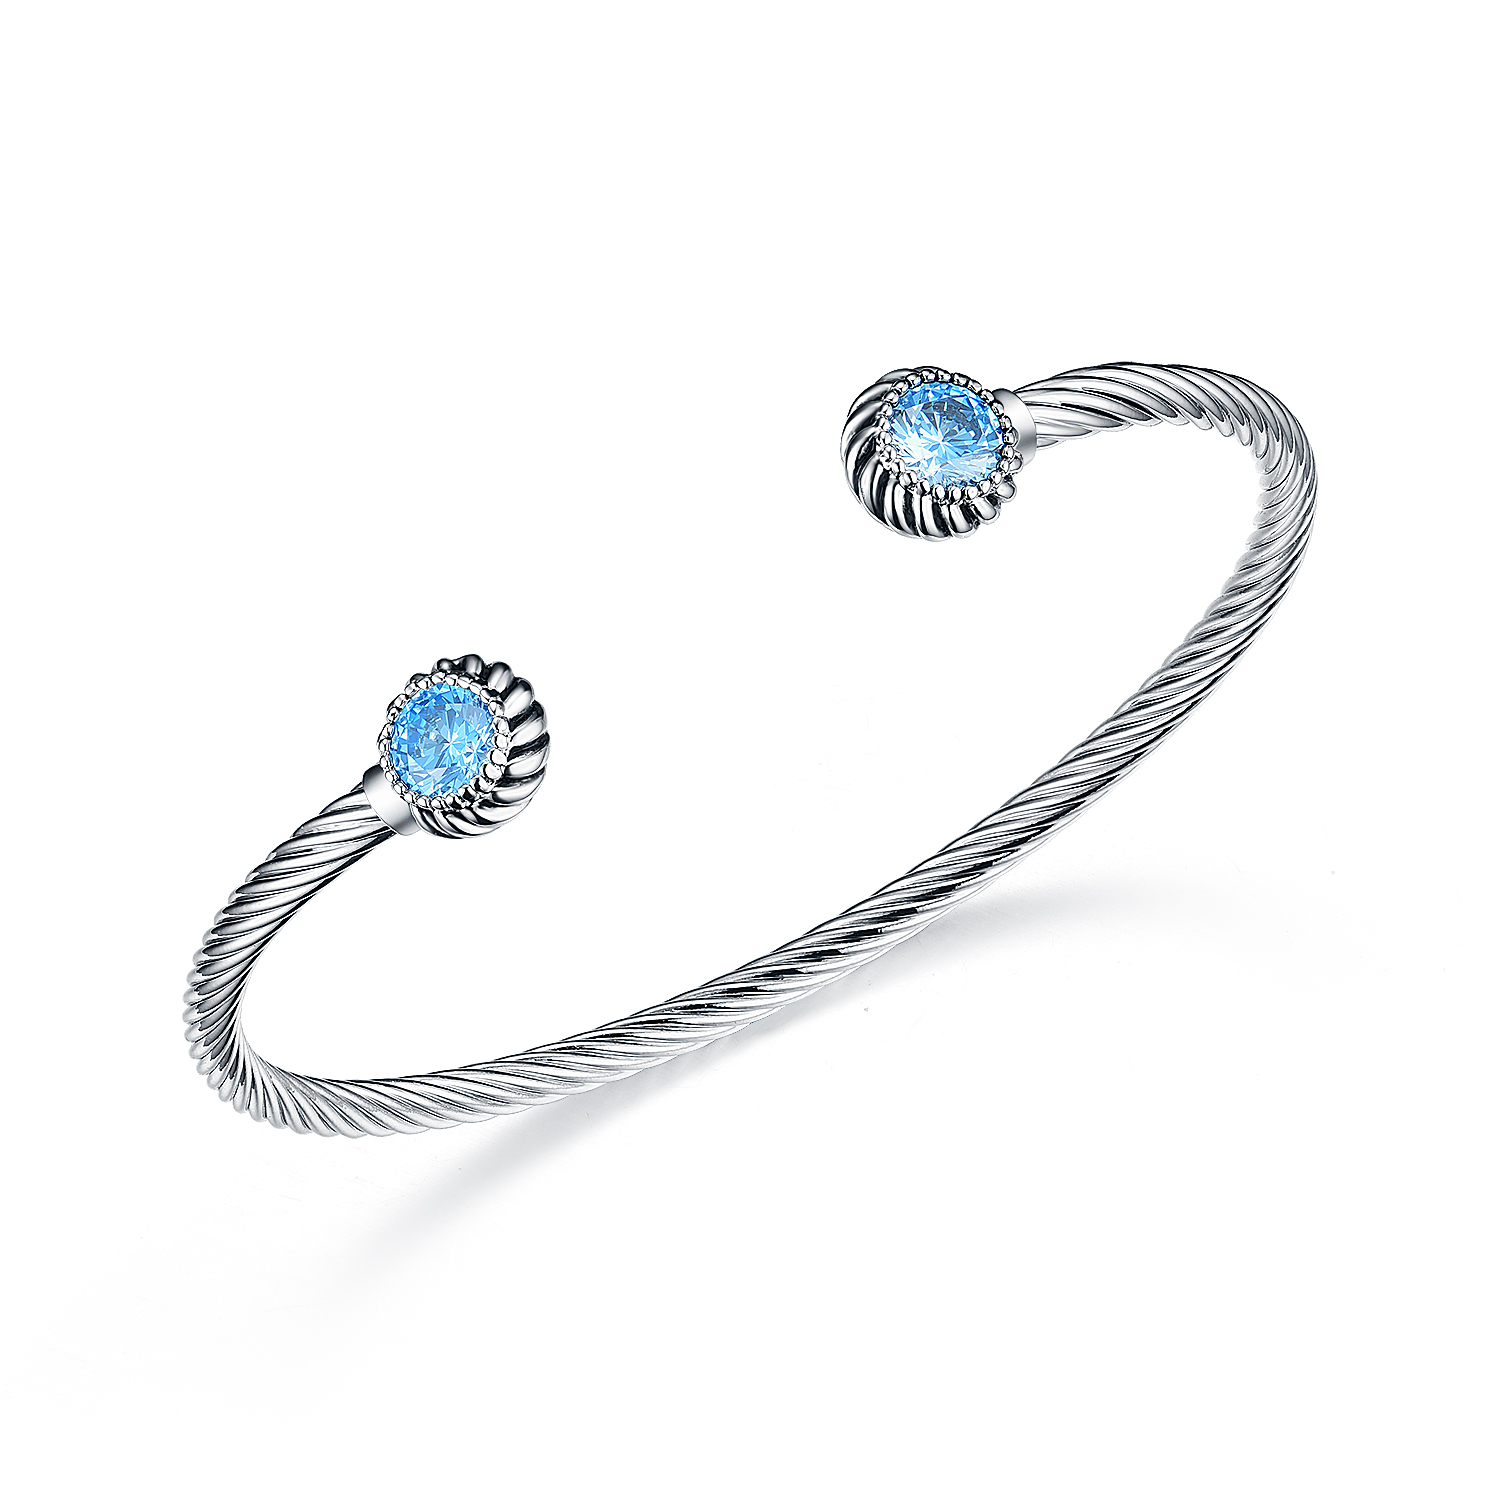 ST2652BA-Designer inspired Cable Bangle with bezel setting round Aquamarine Spinel  in Brass/Copper under Rhodium plated from China Top Jewelry factory